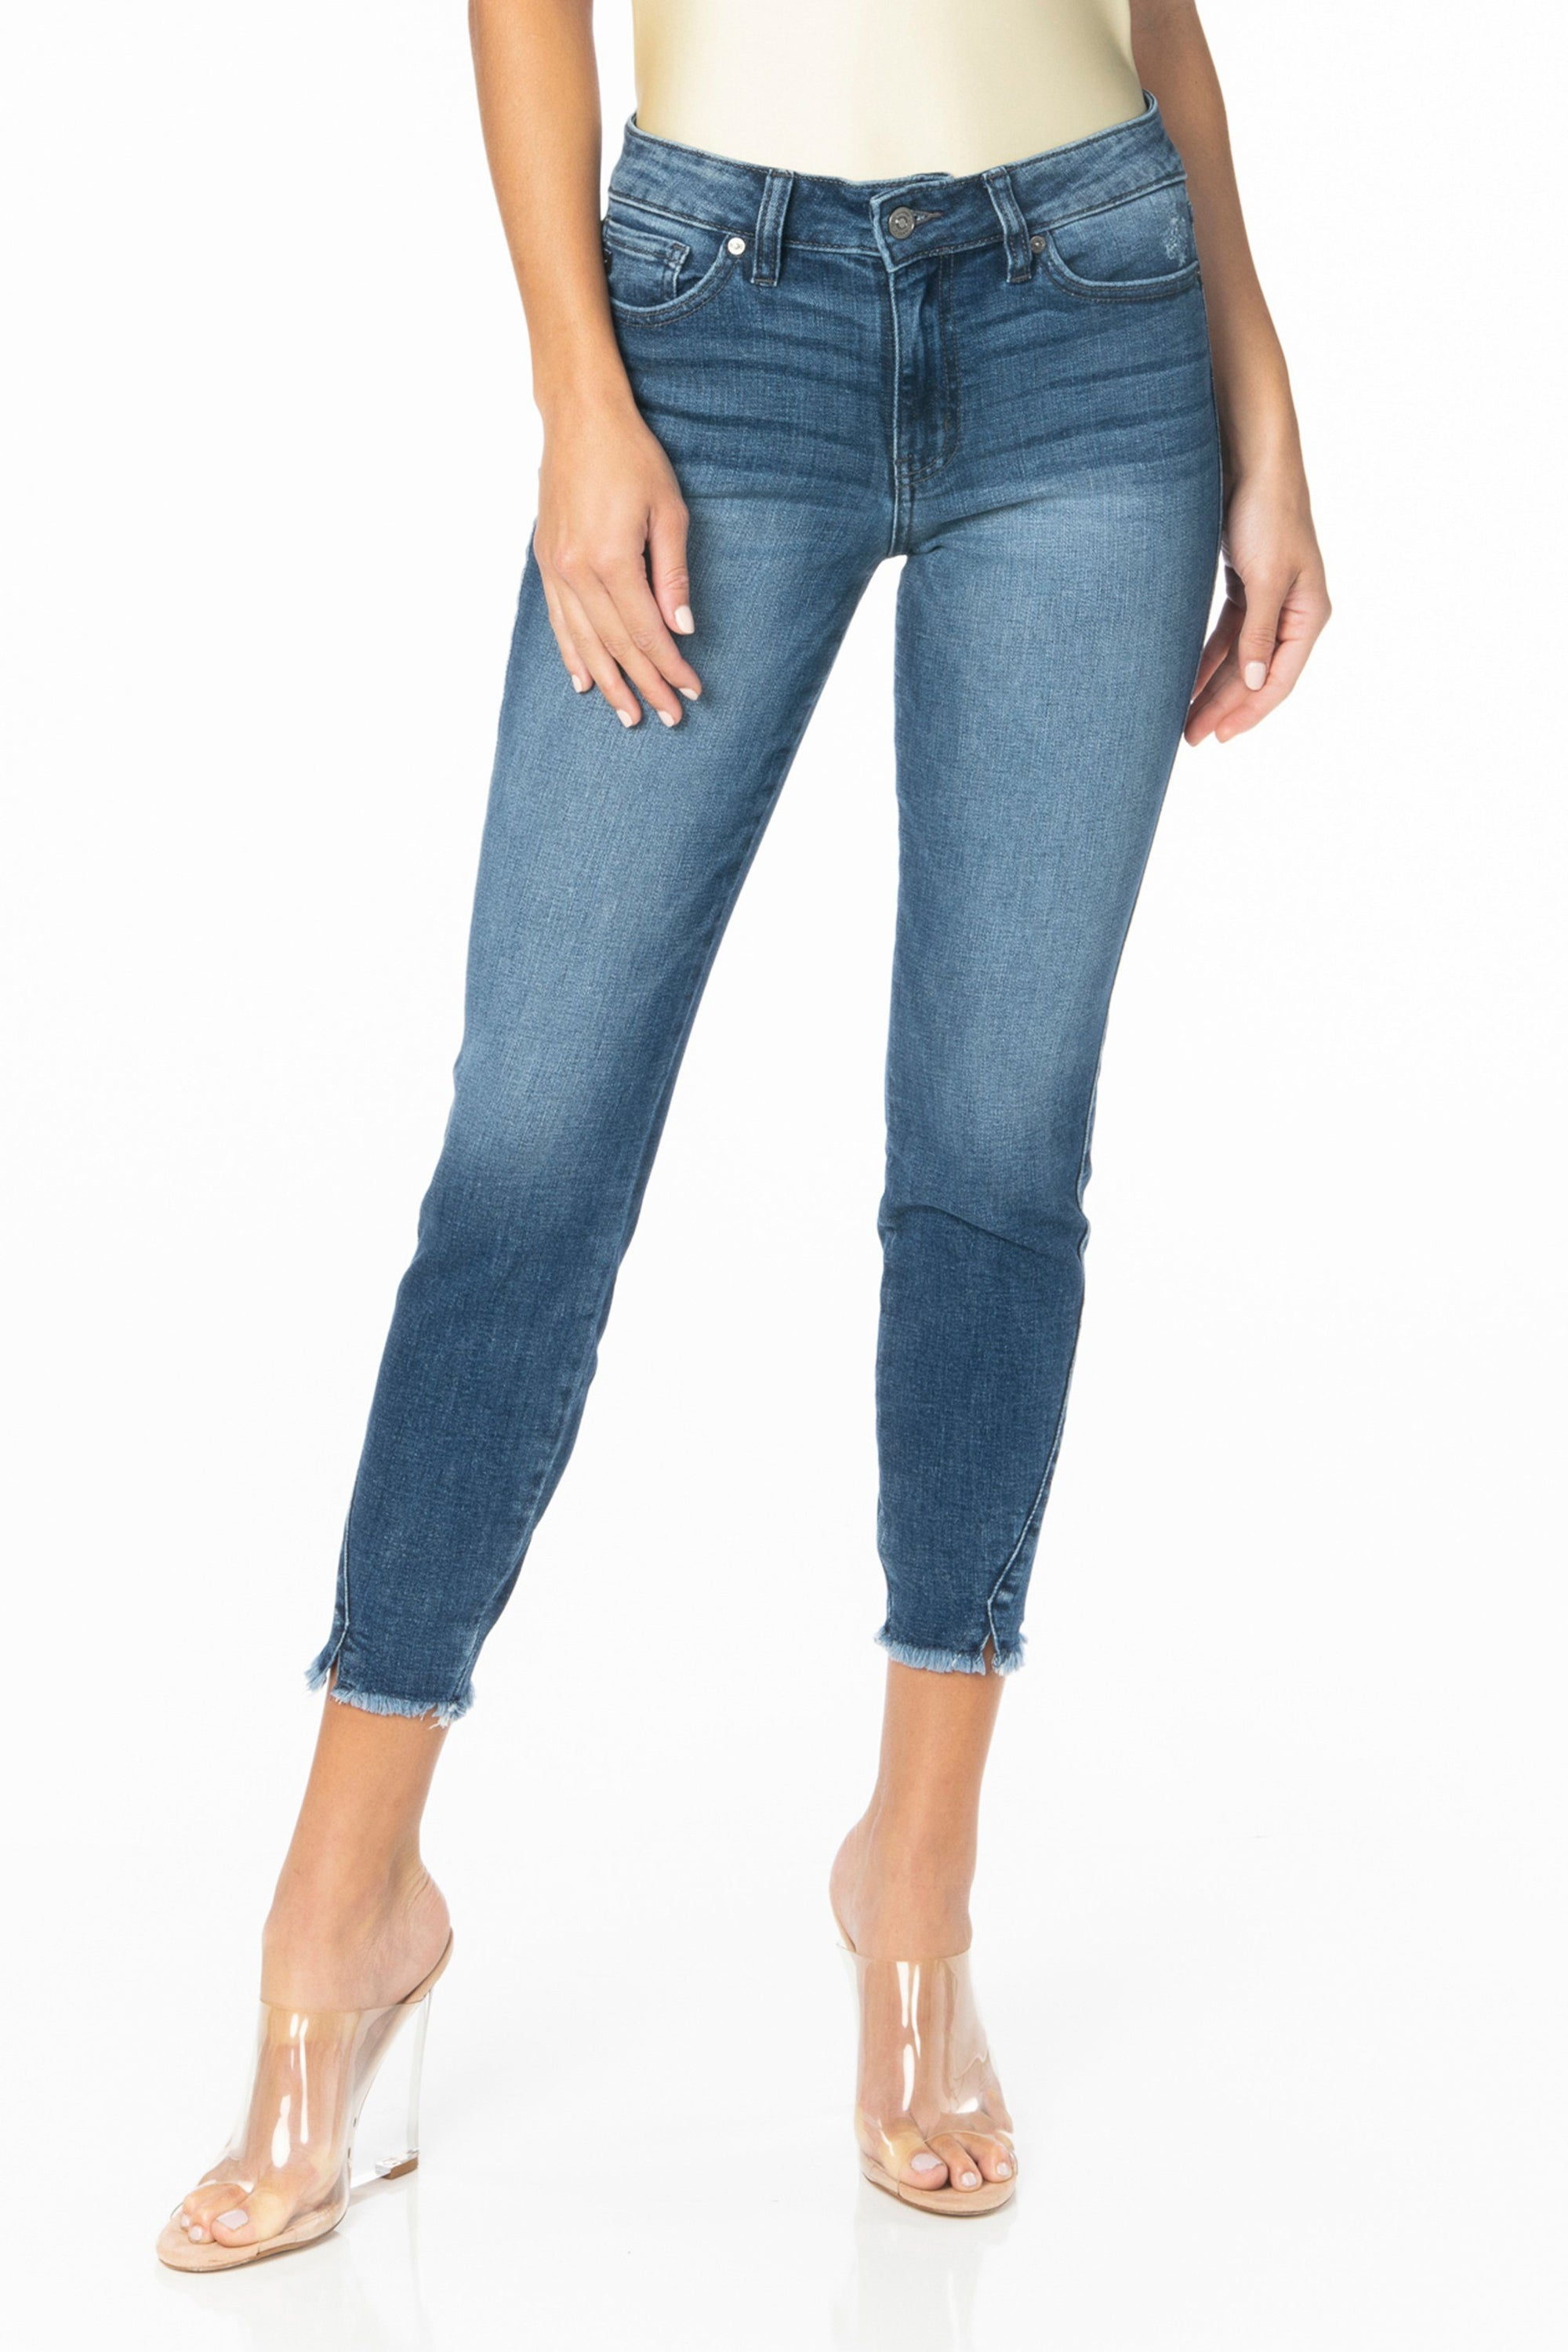 Kancan Denim - Medium Wash Mid Rise Ankle Skinny Jeans Denim Kancan